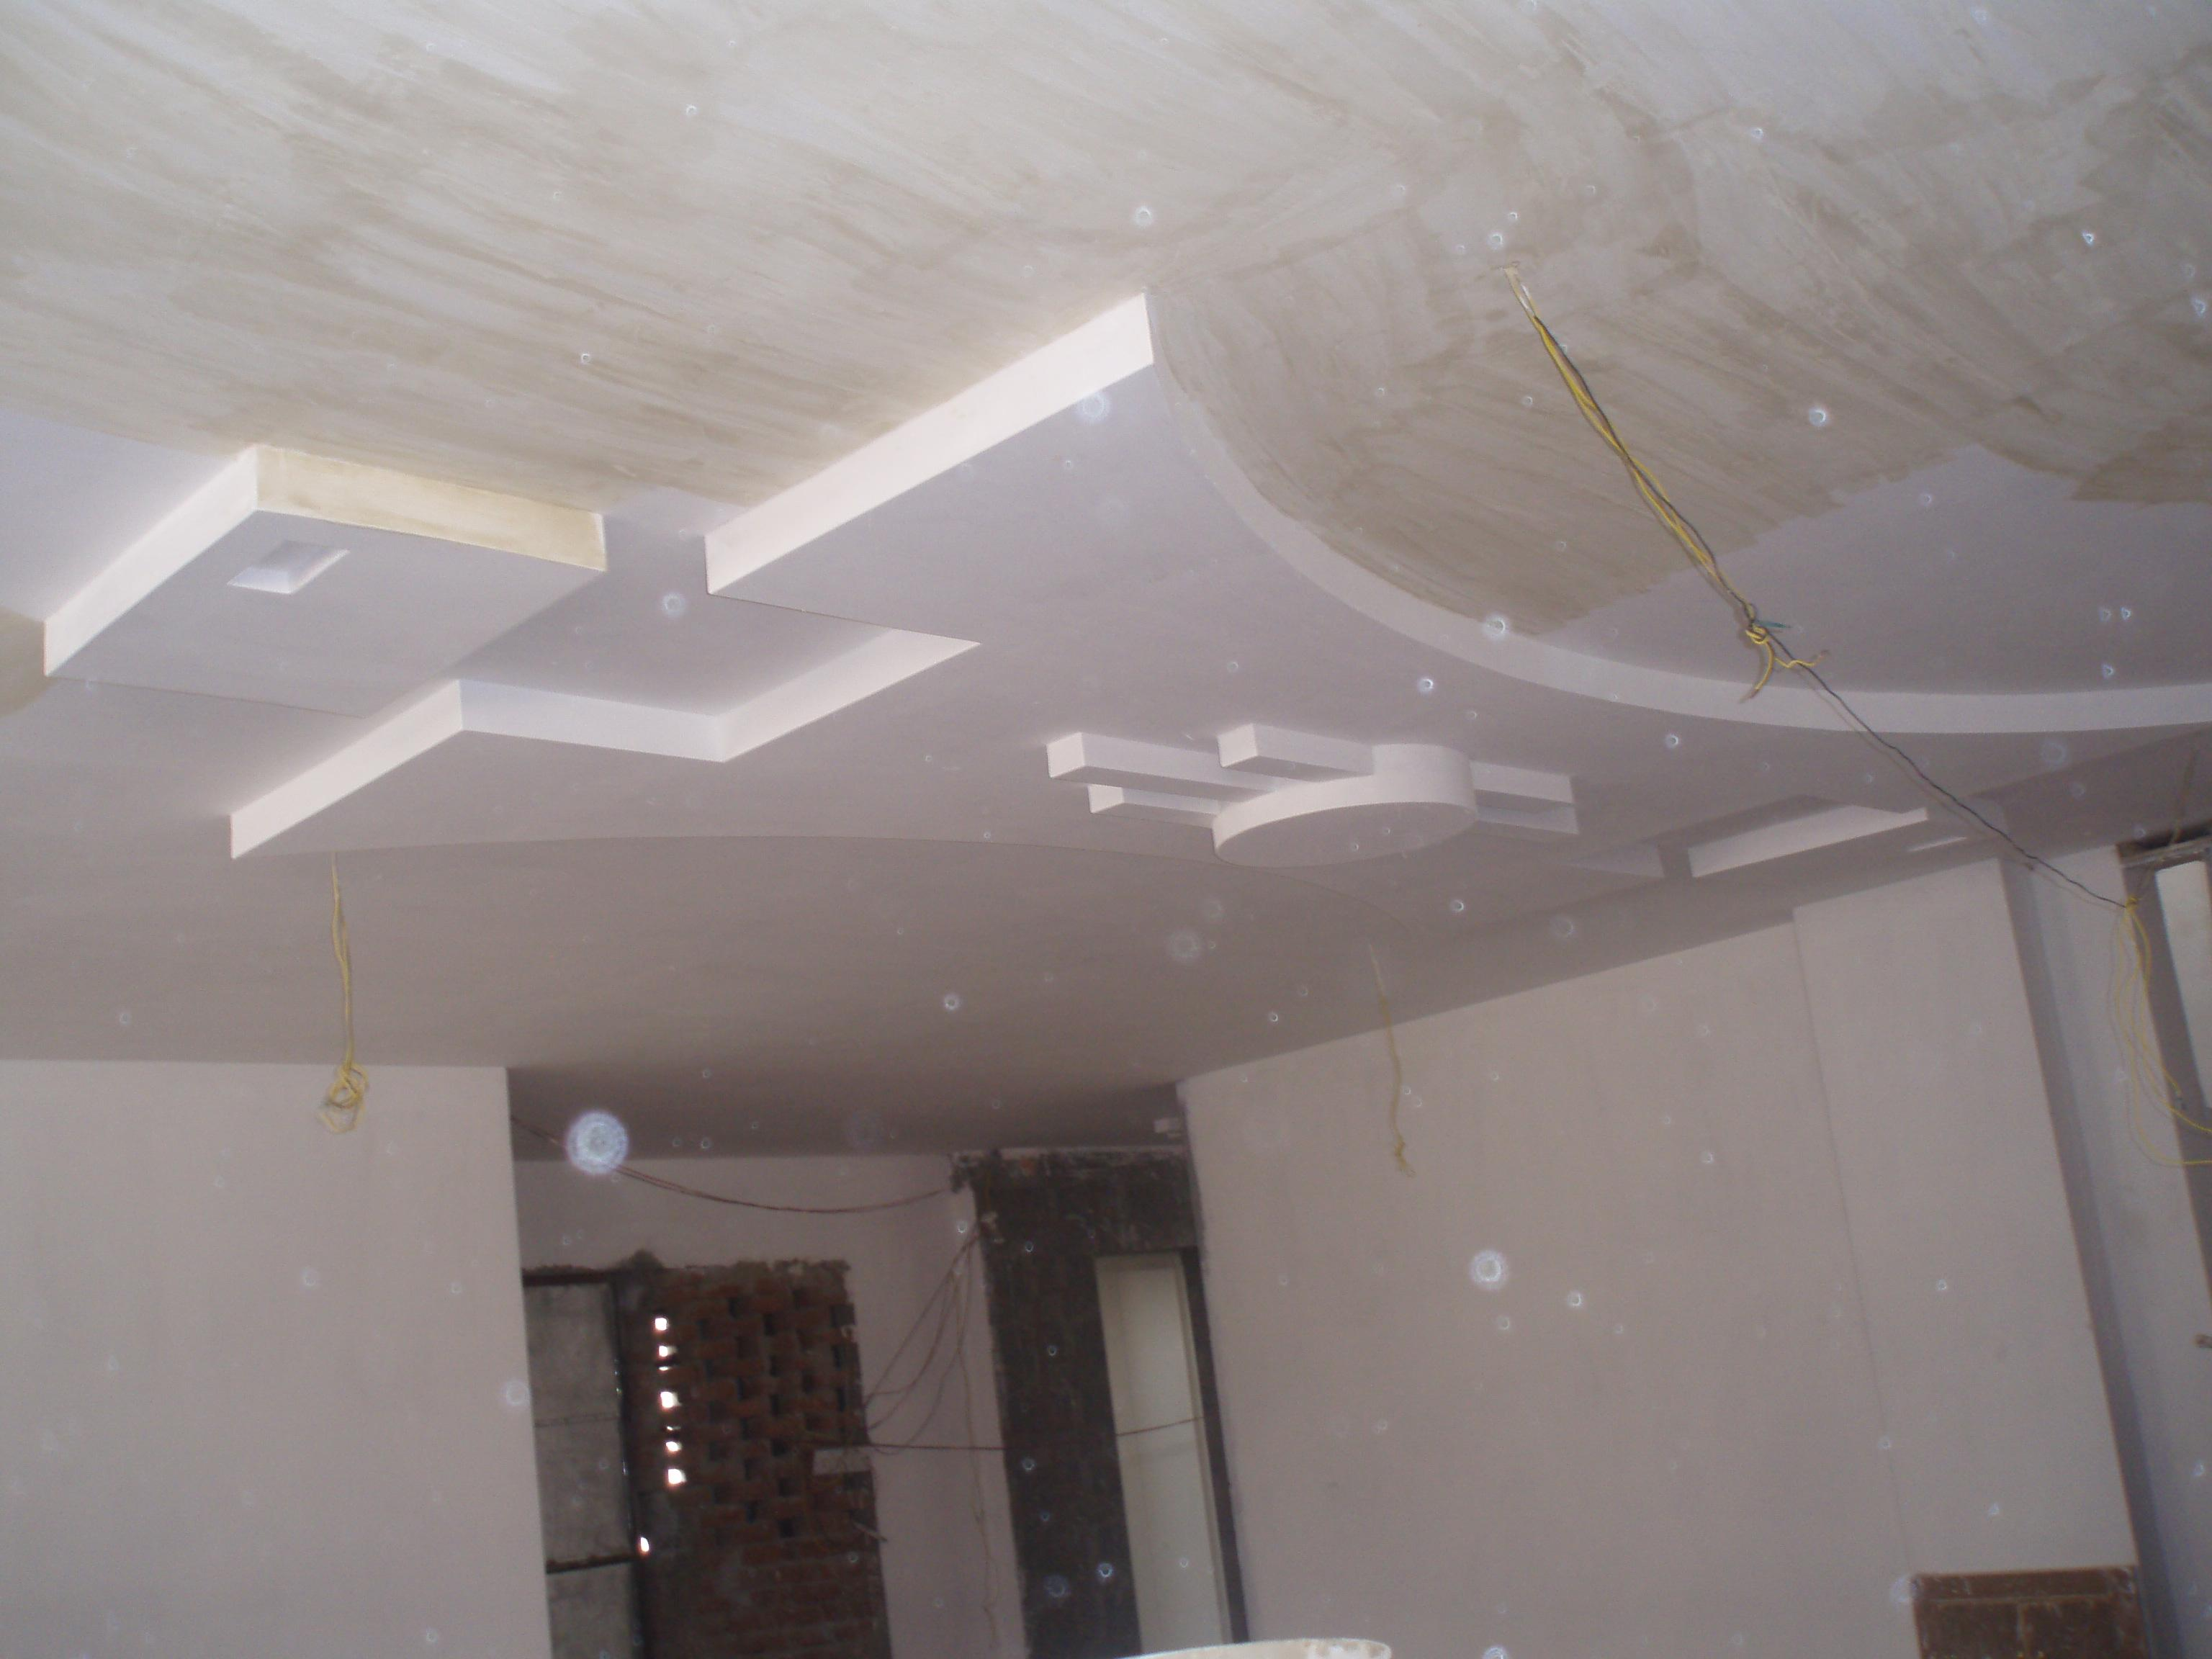 False ceiling photos - GharExpert